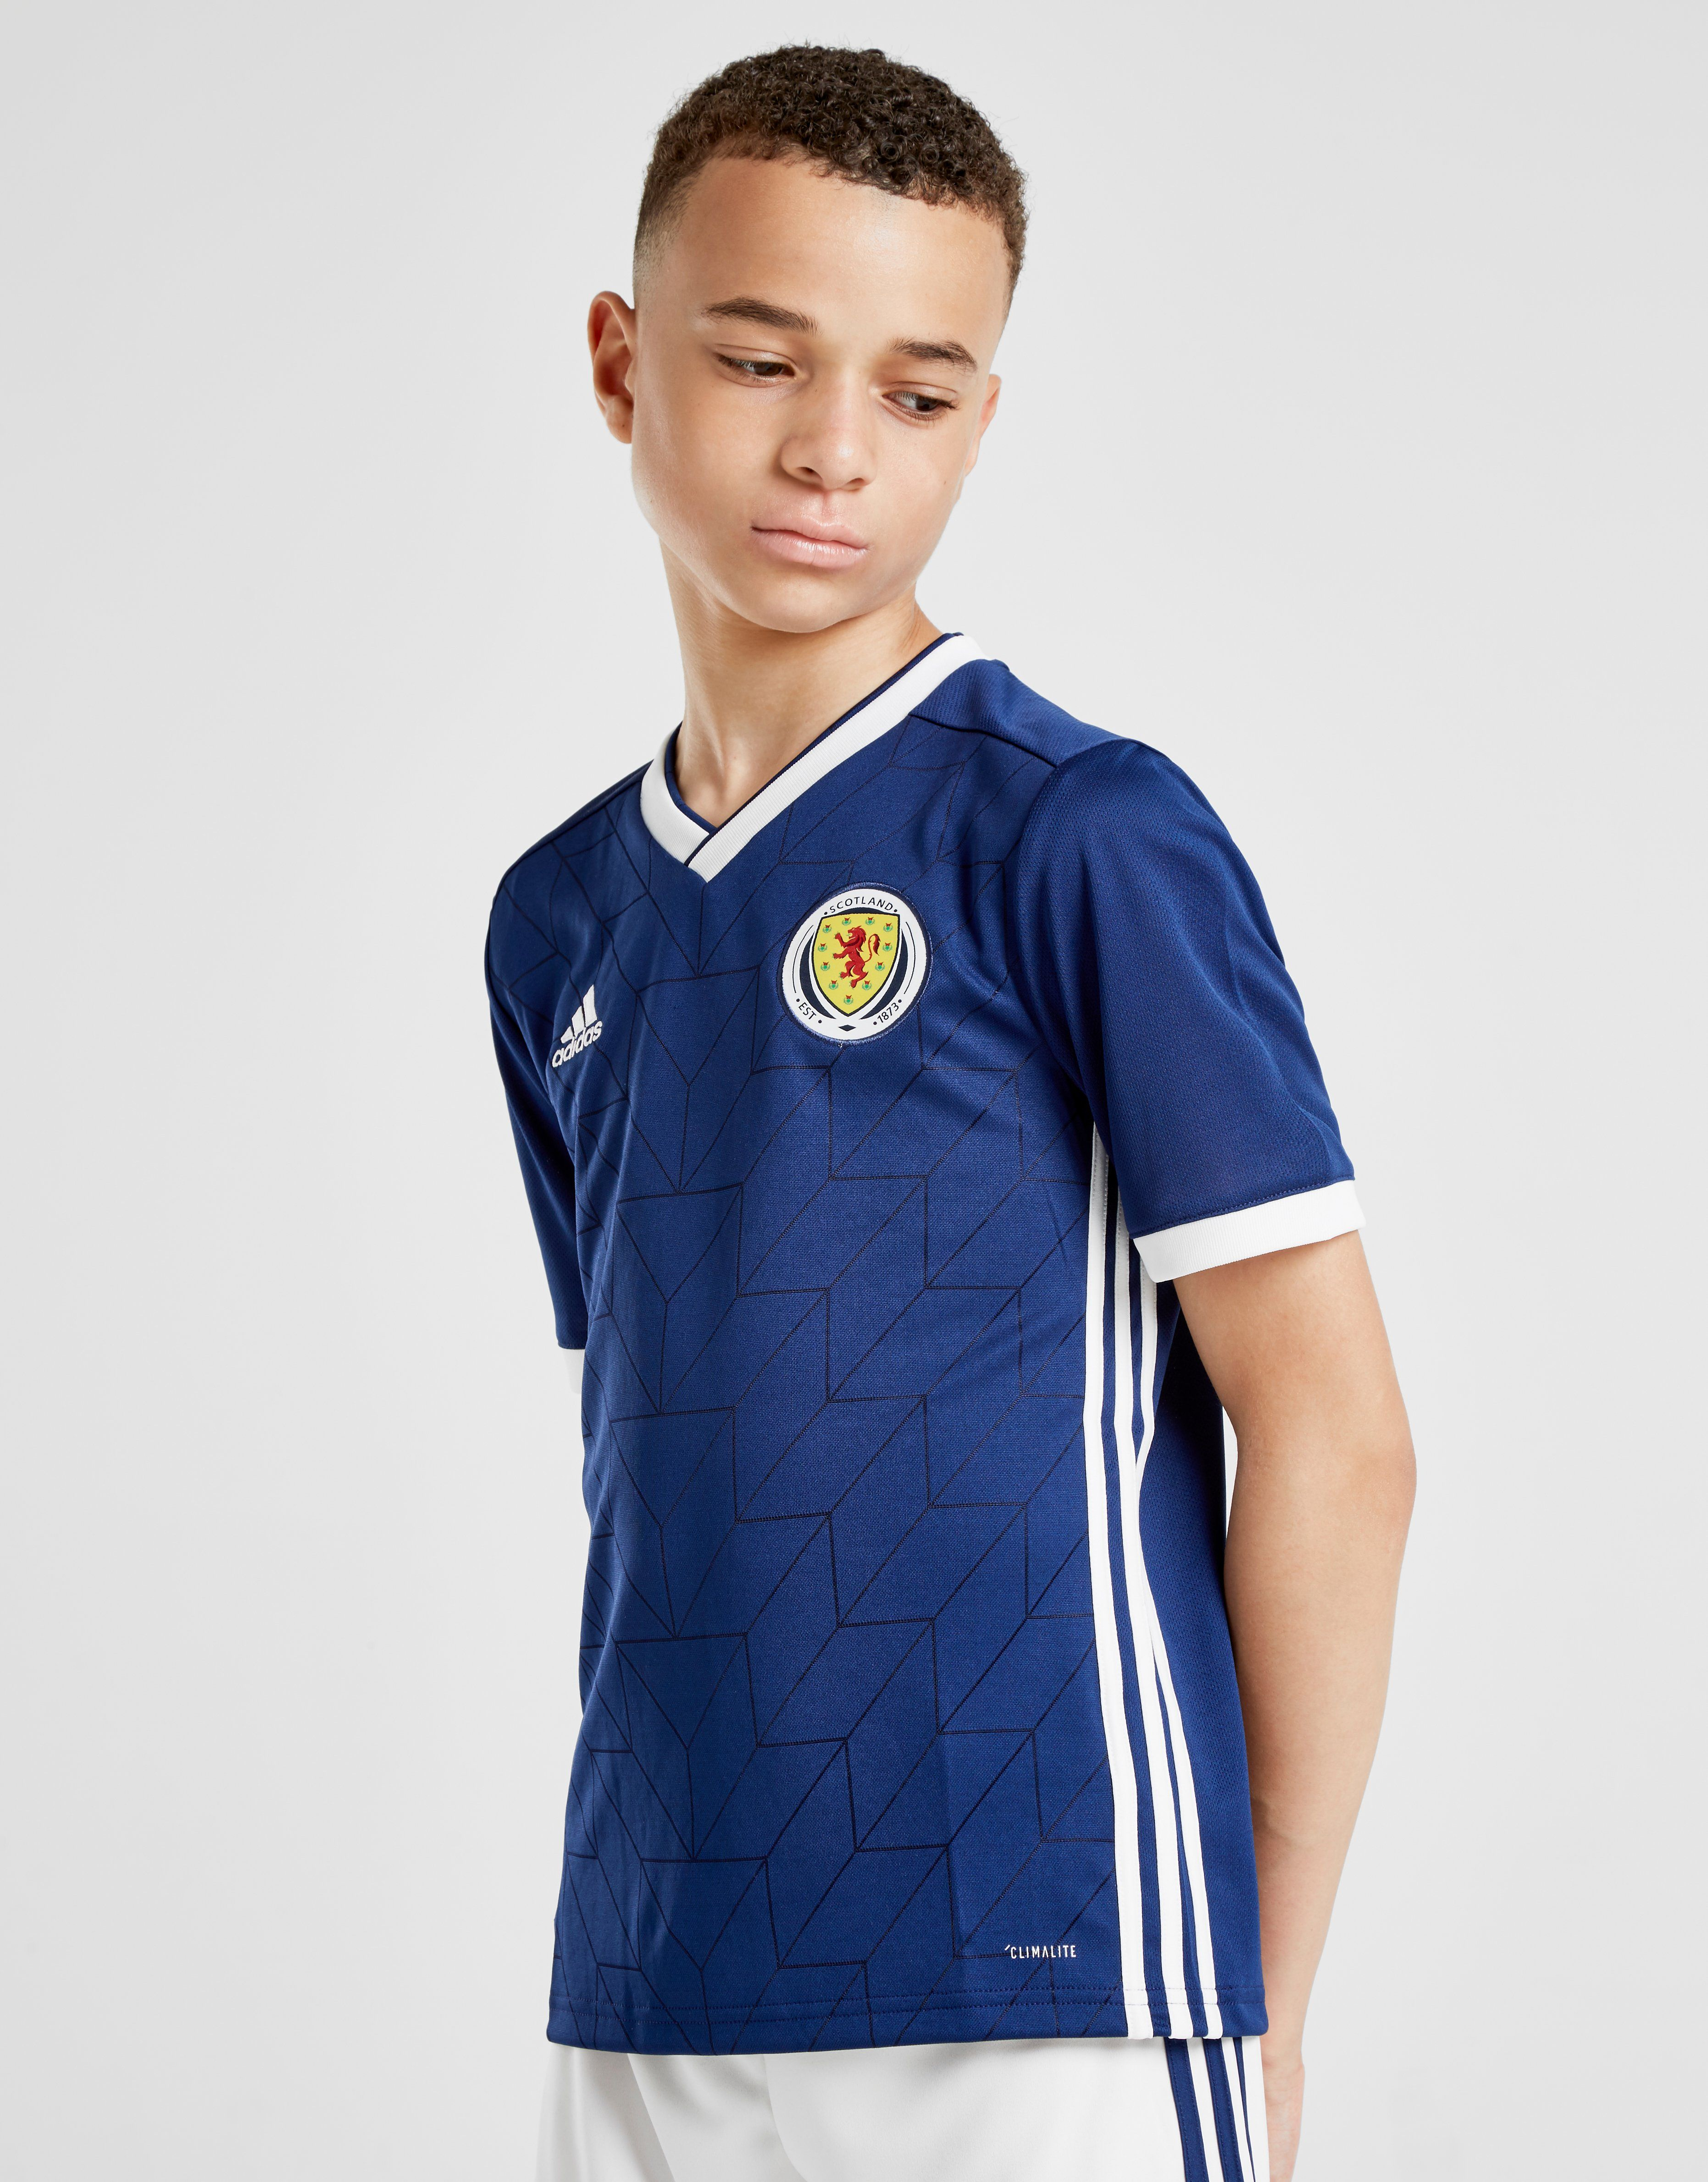 98d54e79bd5 adidas Scotland 2018 19 Home Shirt Junior ...